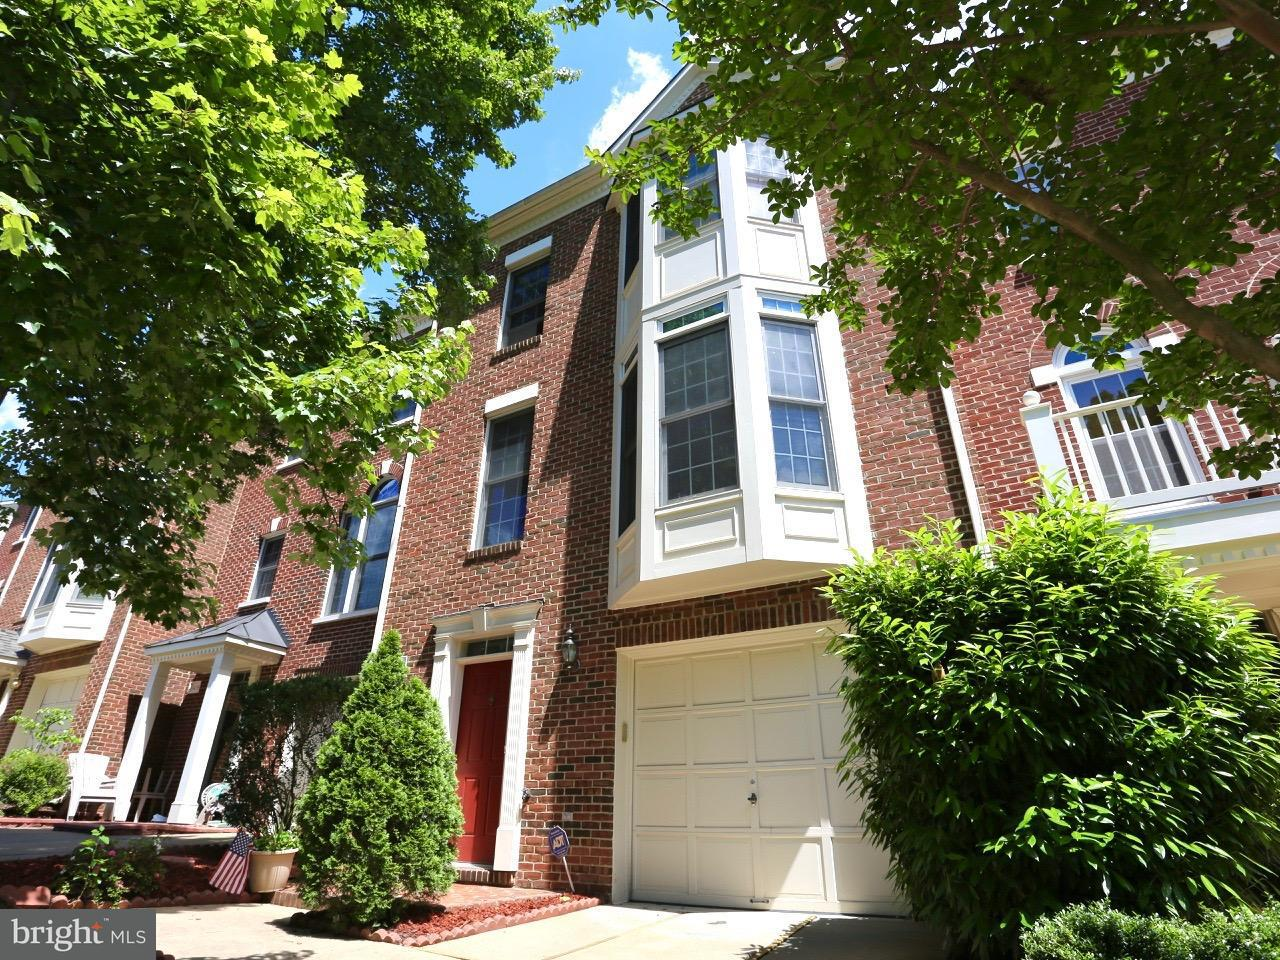 Townhouse for Sale at 4041 WERTHERS Court 4041 WERTHERS Court Fairfax, Virginia 22030 United States